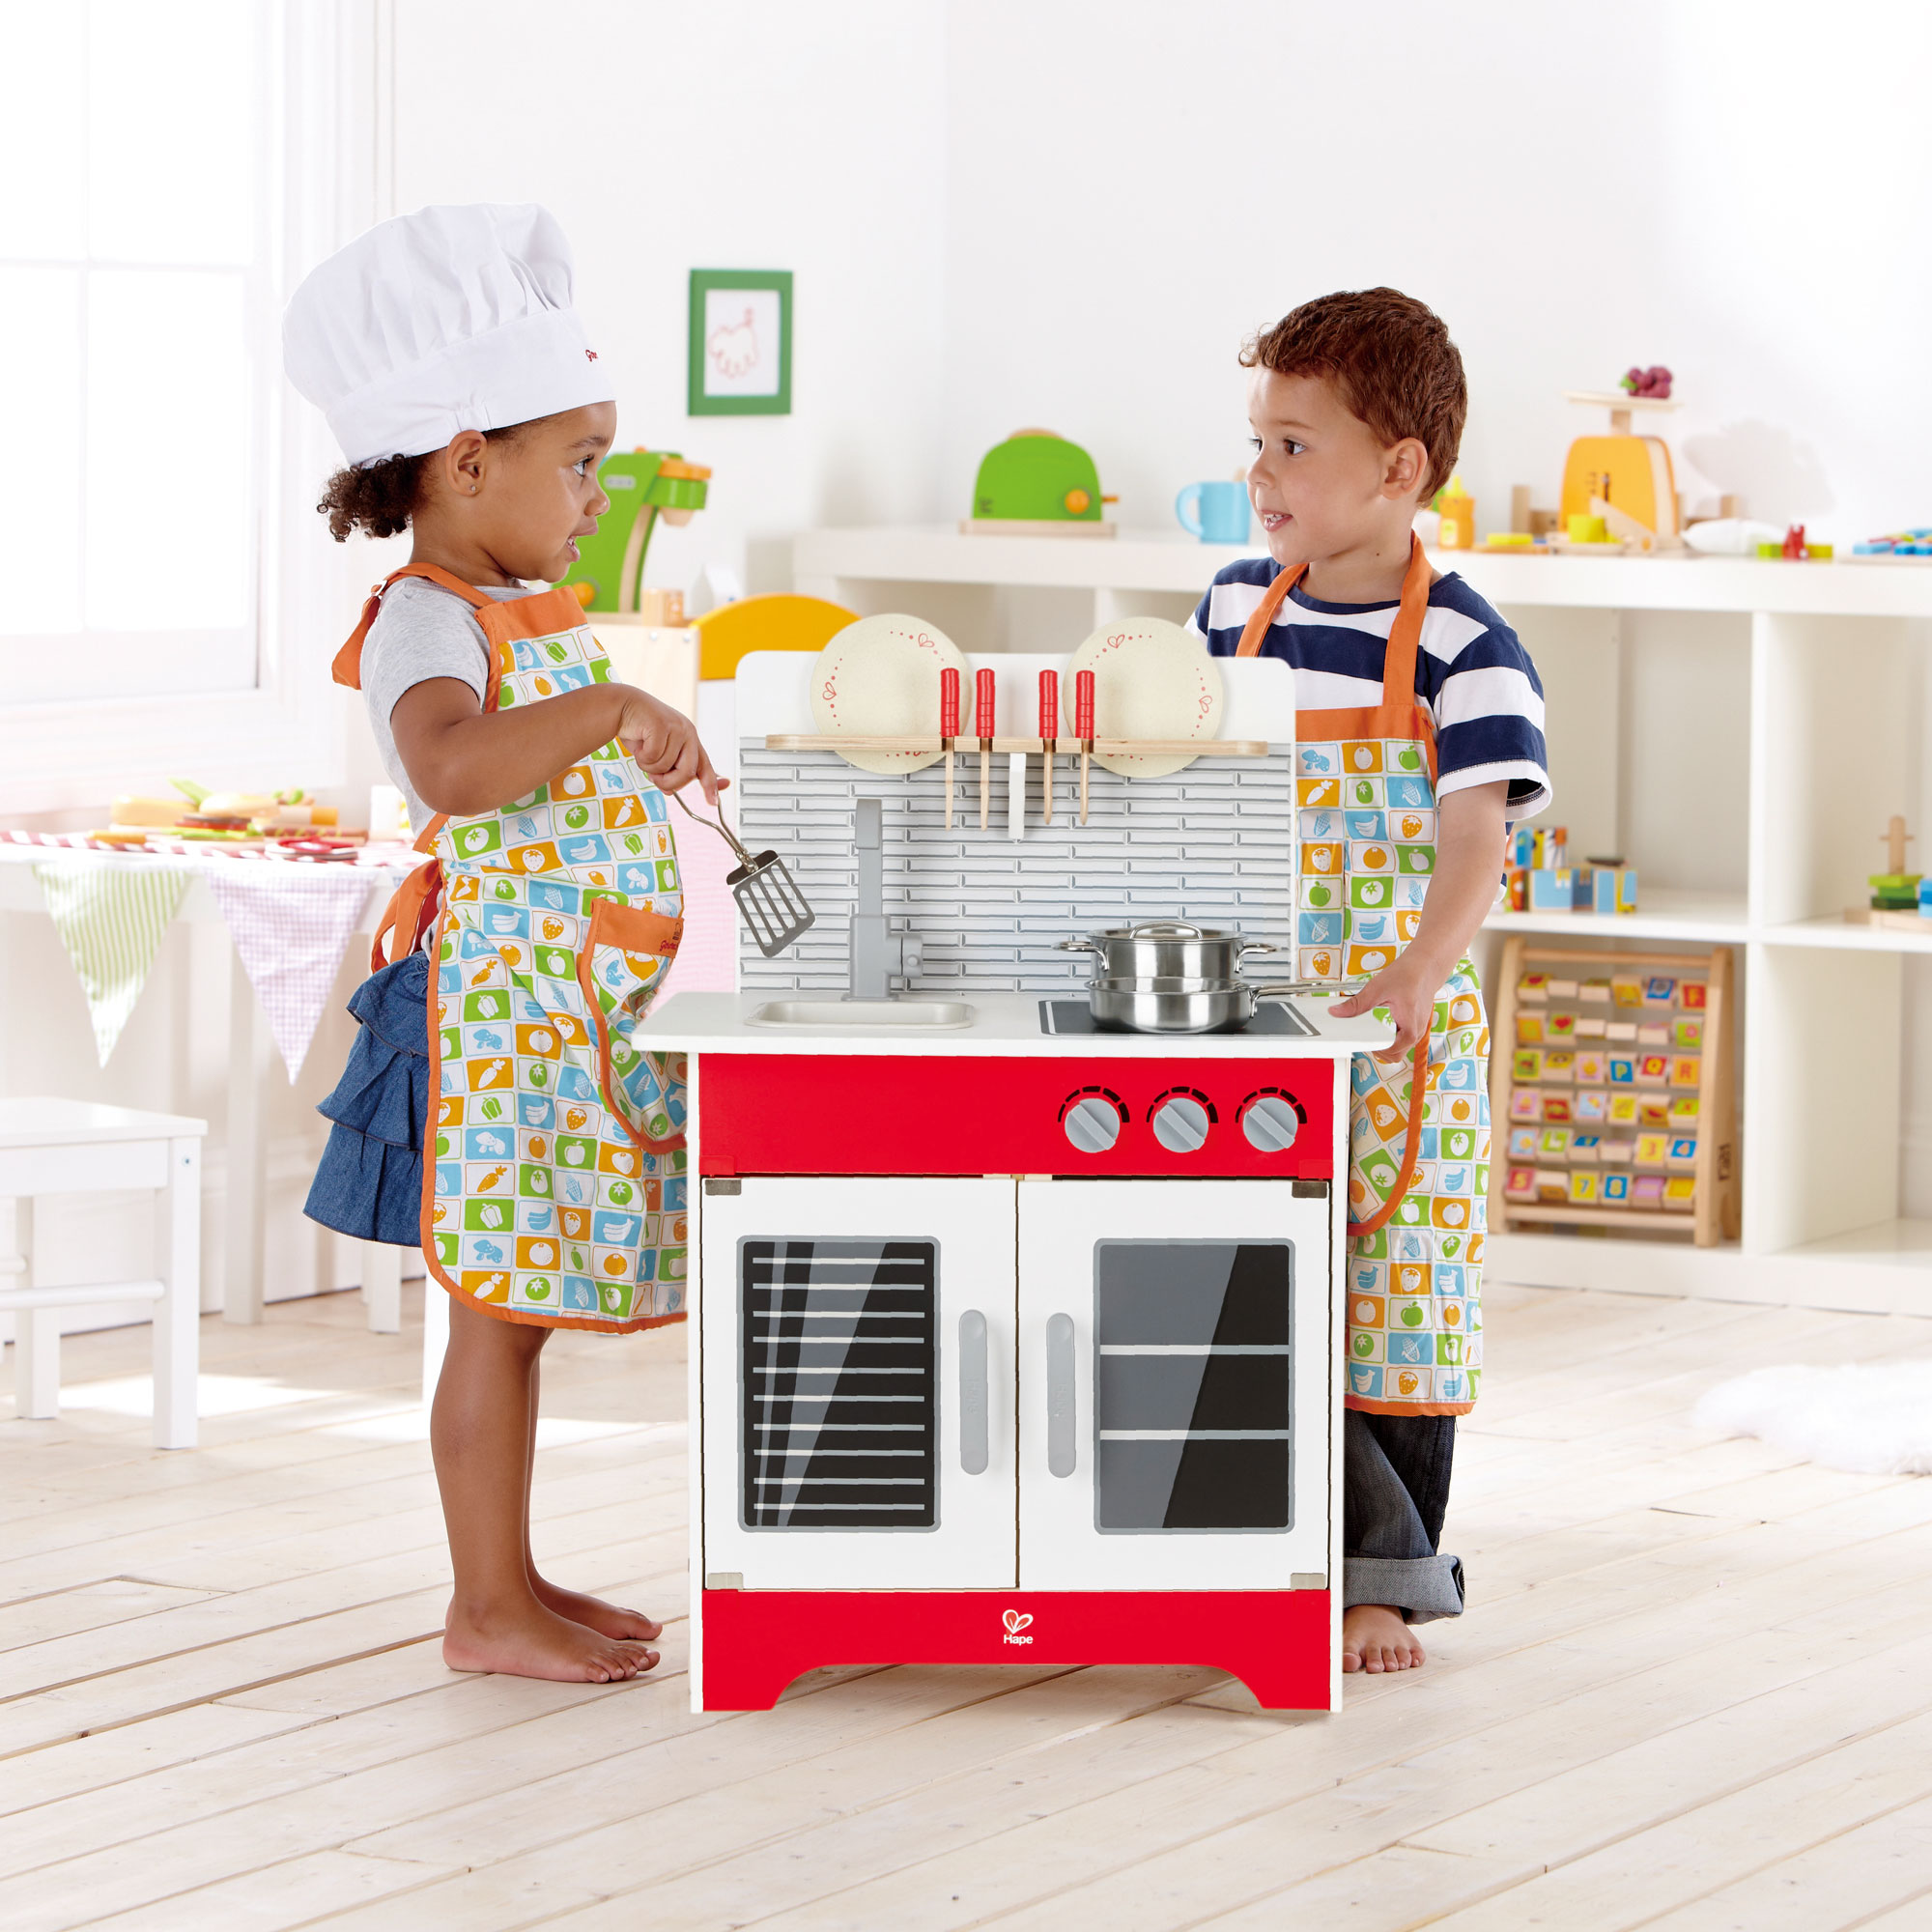 Hape Wooden City Cafe Pretend Cooking Play Kitchen Set Kids Toddler Toy Playset  eBay